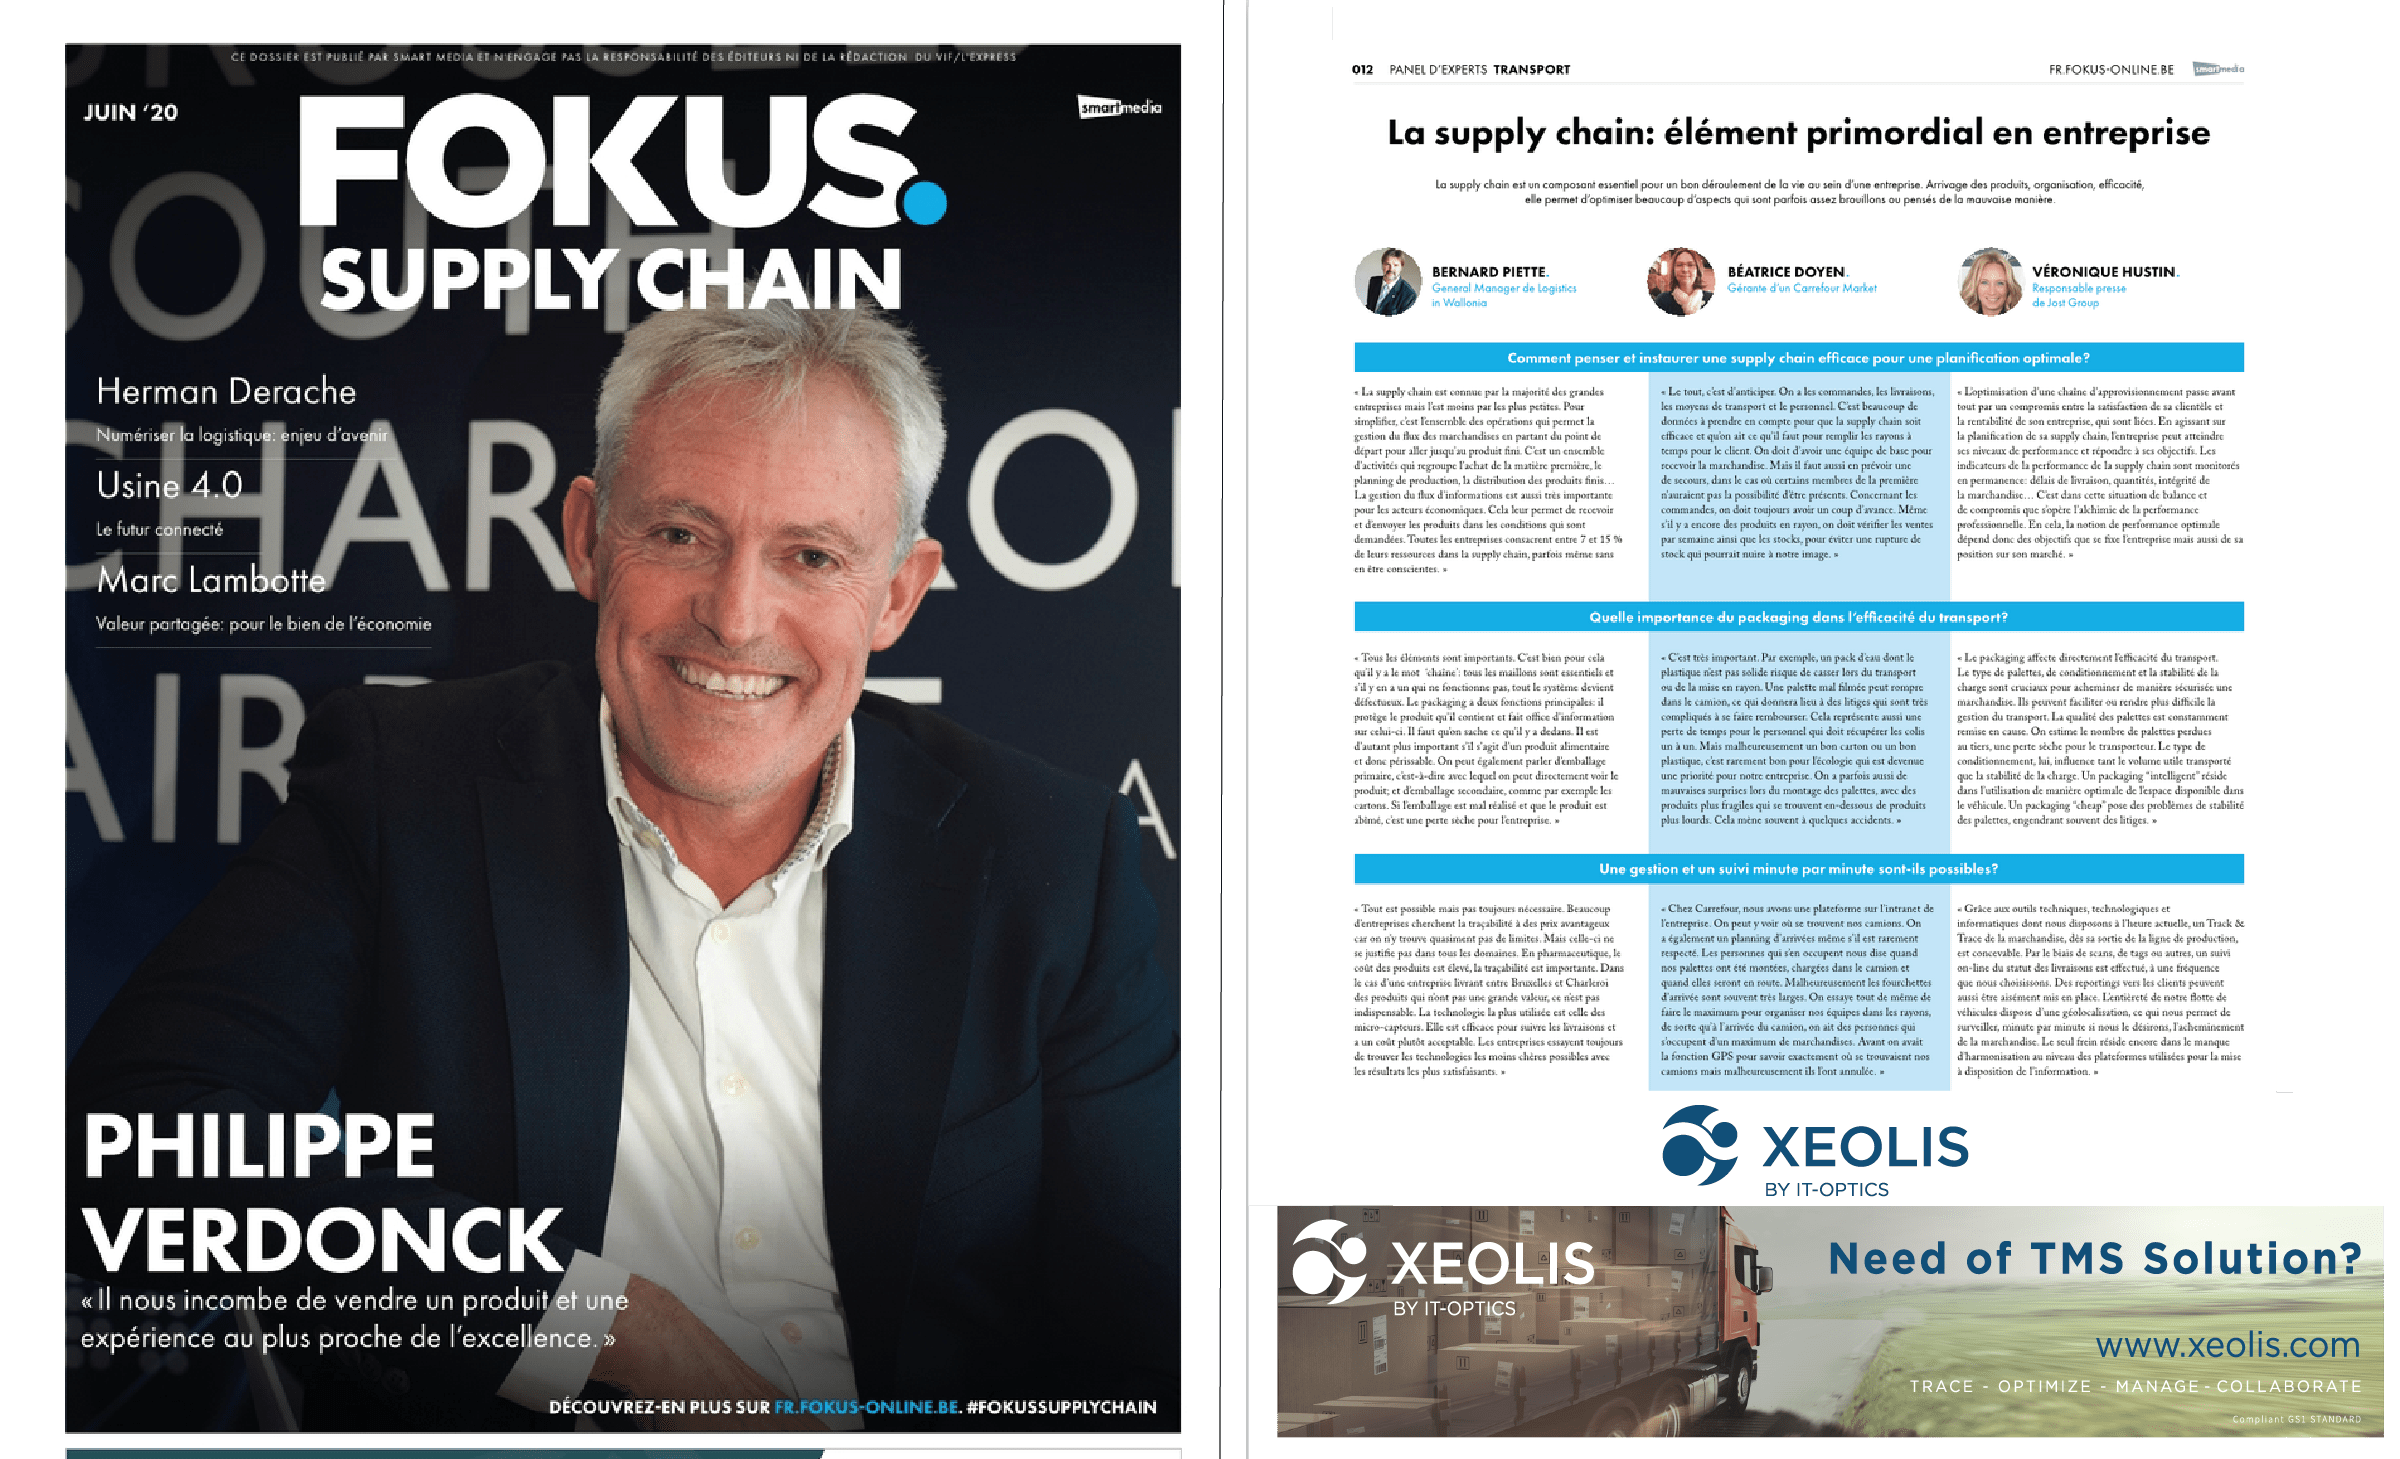 FOKUS SUPPLY CHAIN MANAGEMENT XEOLIS